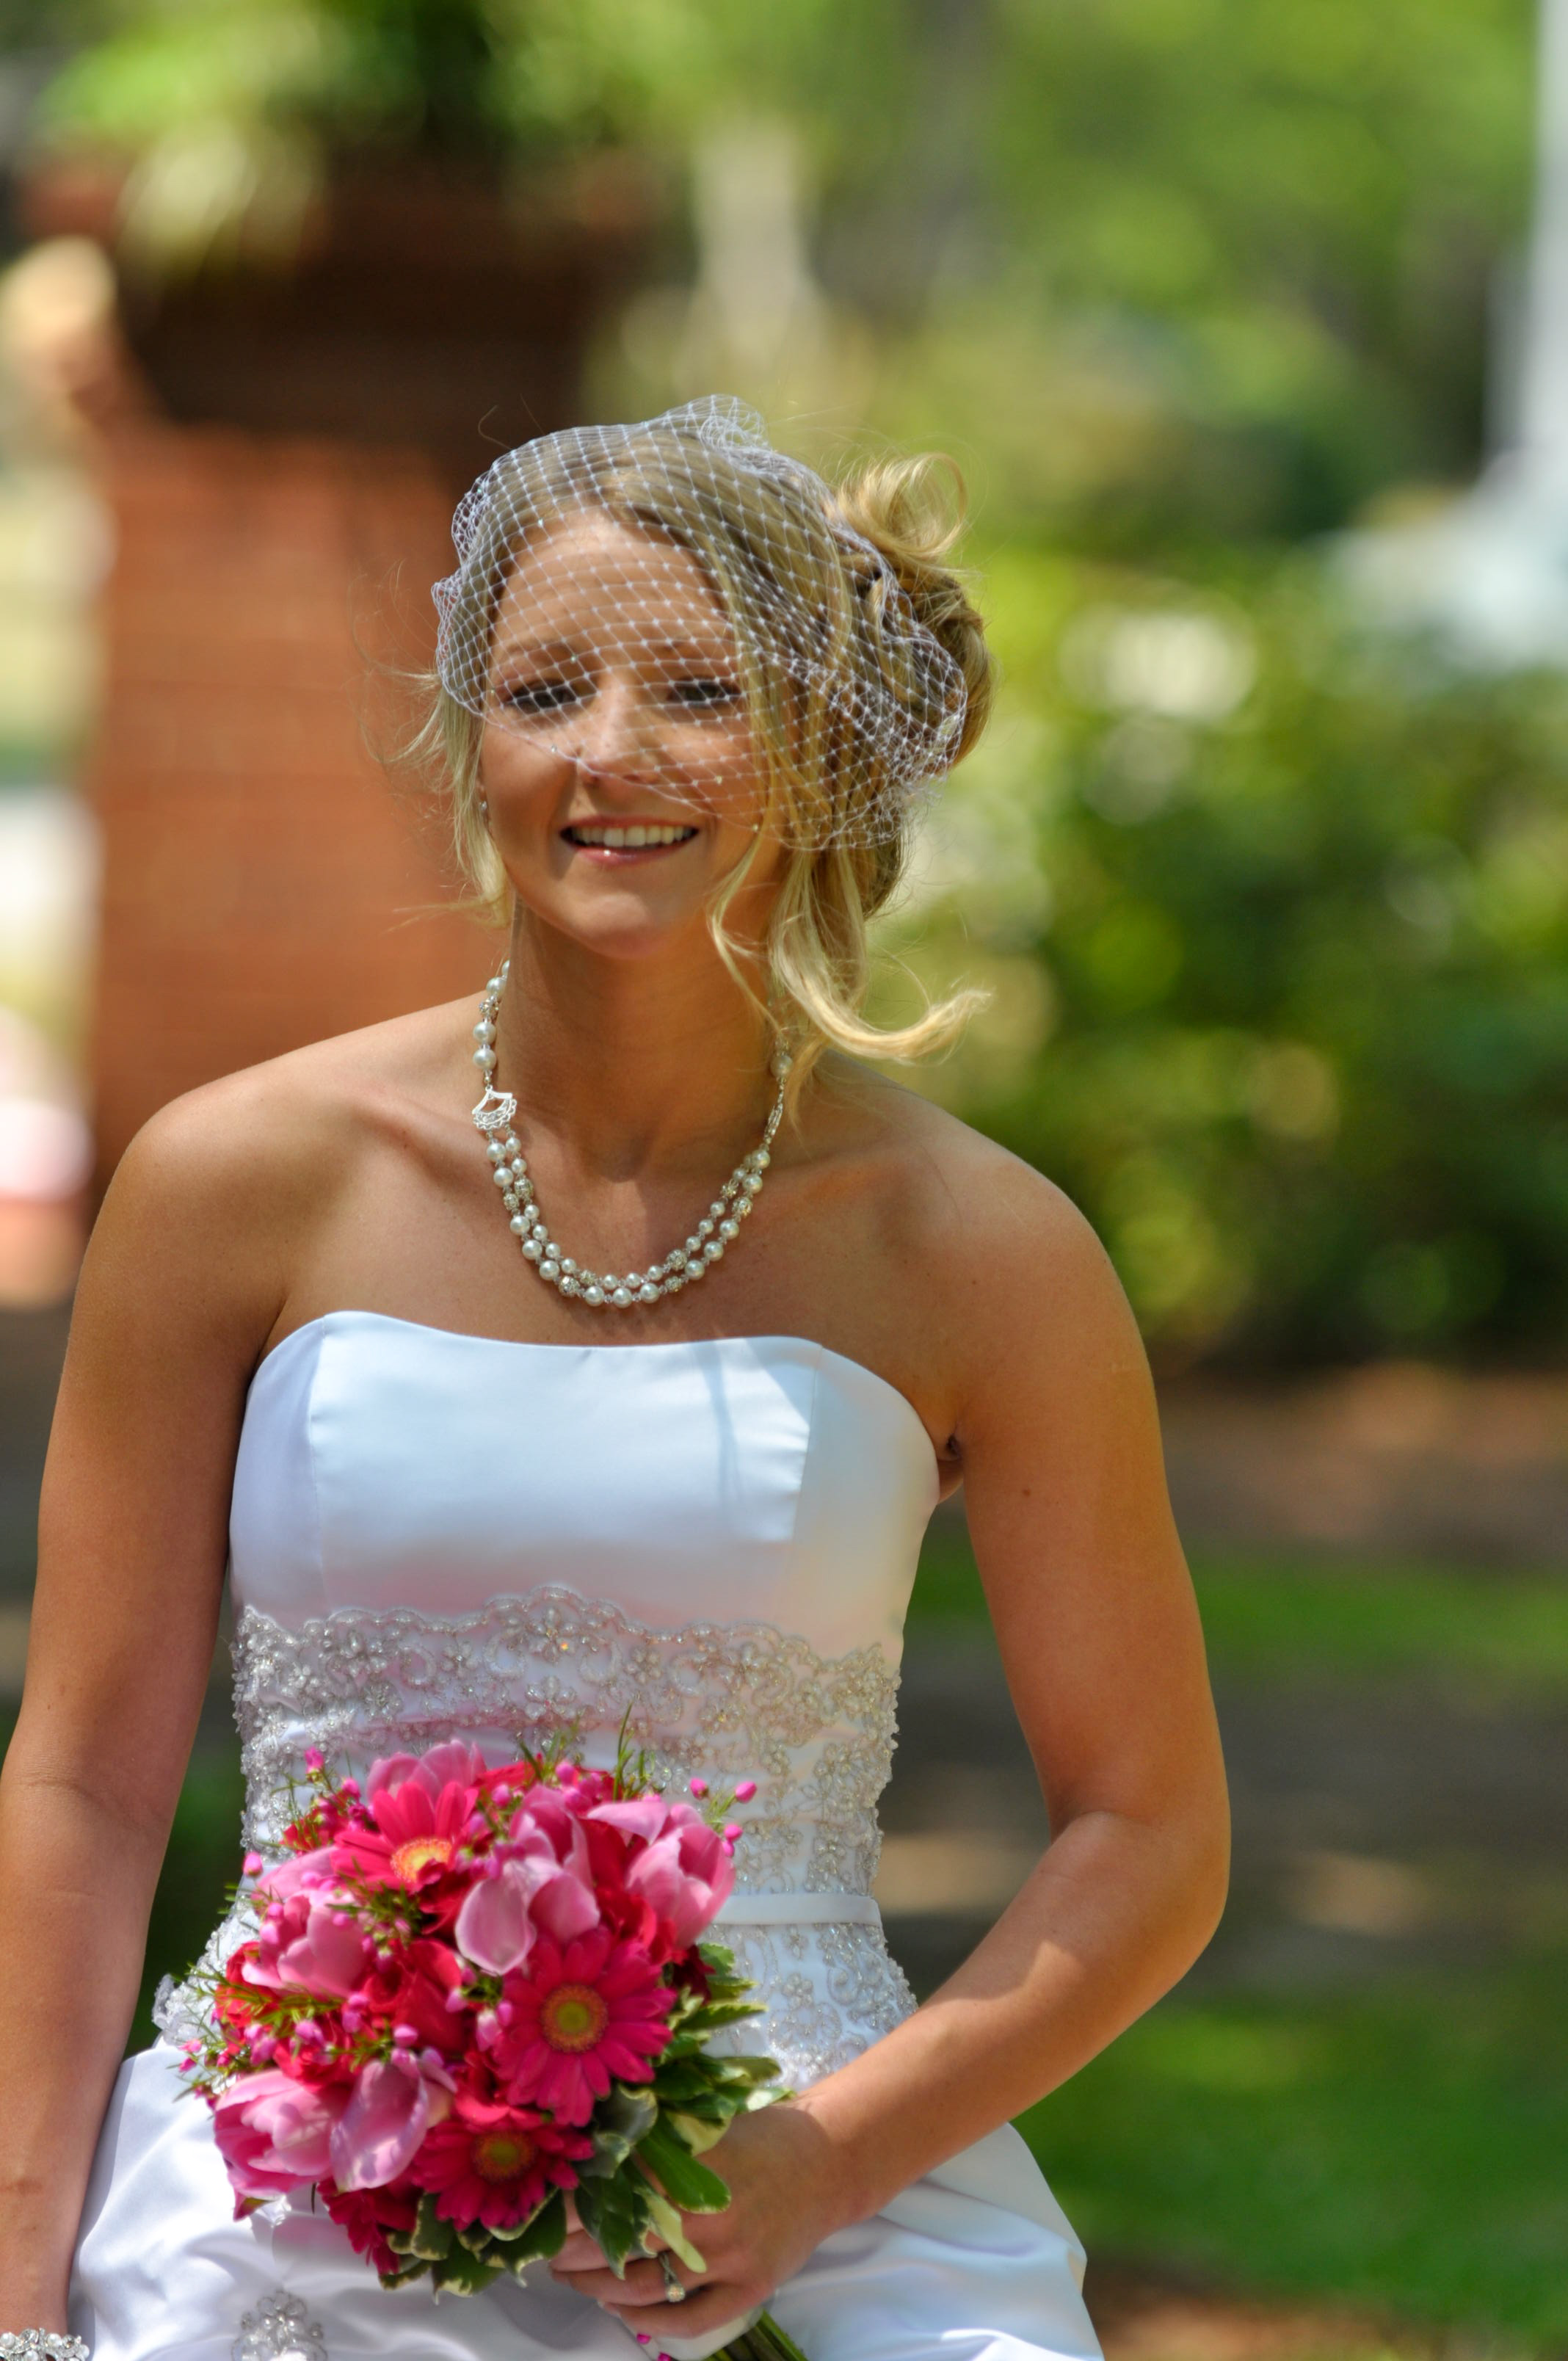 - Bride sees her groom for the first time at her wedding in Greenfield Lake, in Wilmington, NC. Big smile. Billy Beach Photography. Affordable wedding.